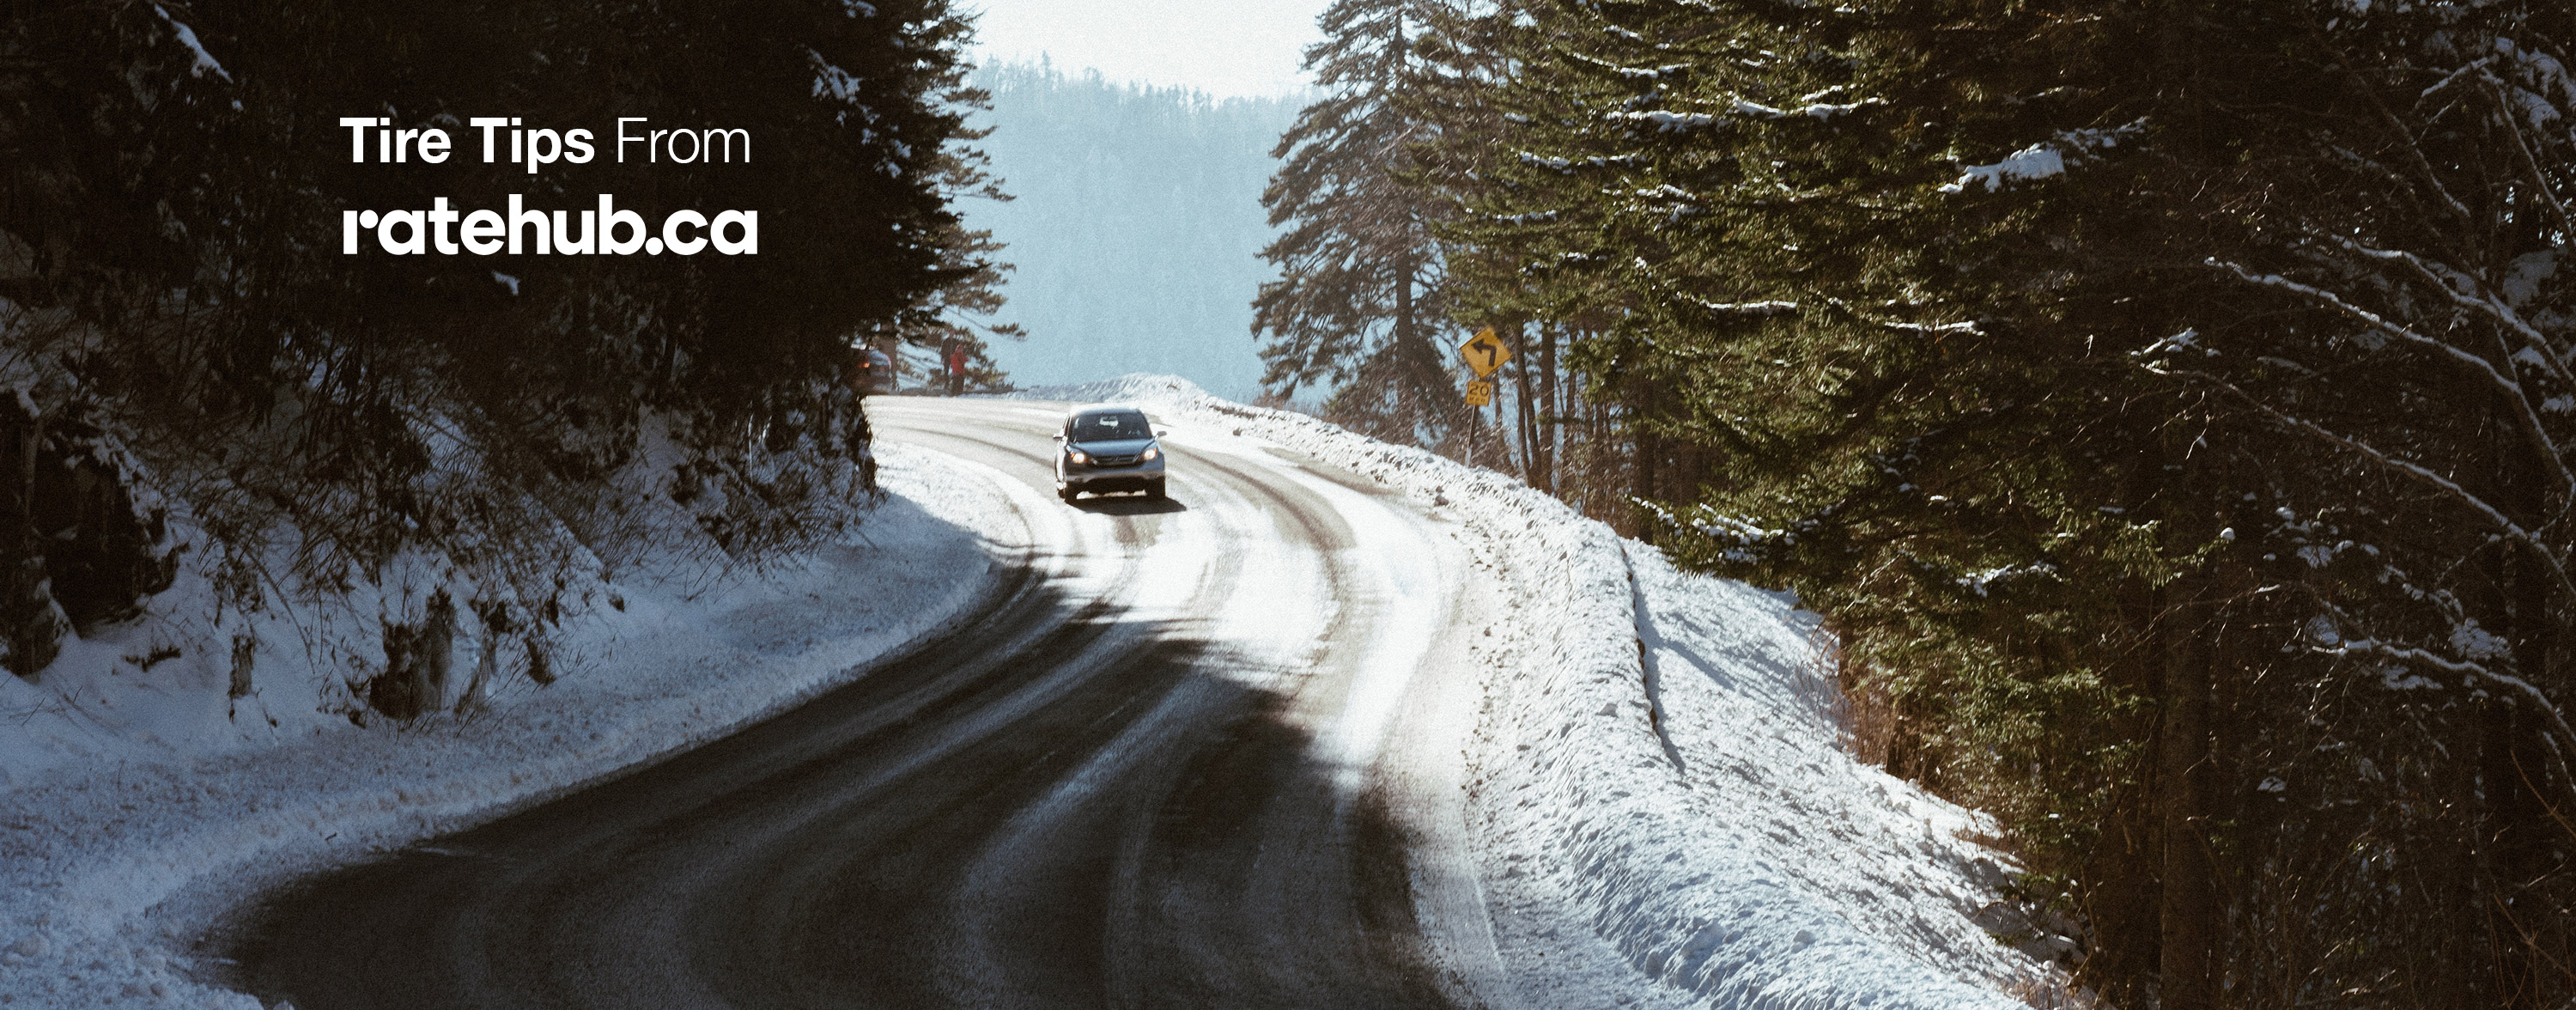 Winter Tires - a Smart Financial Decision